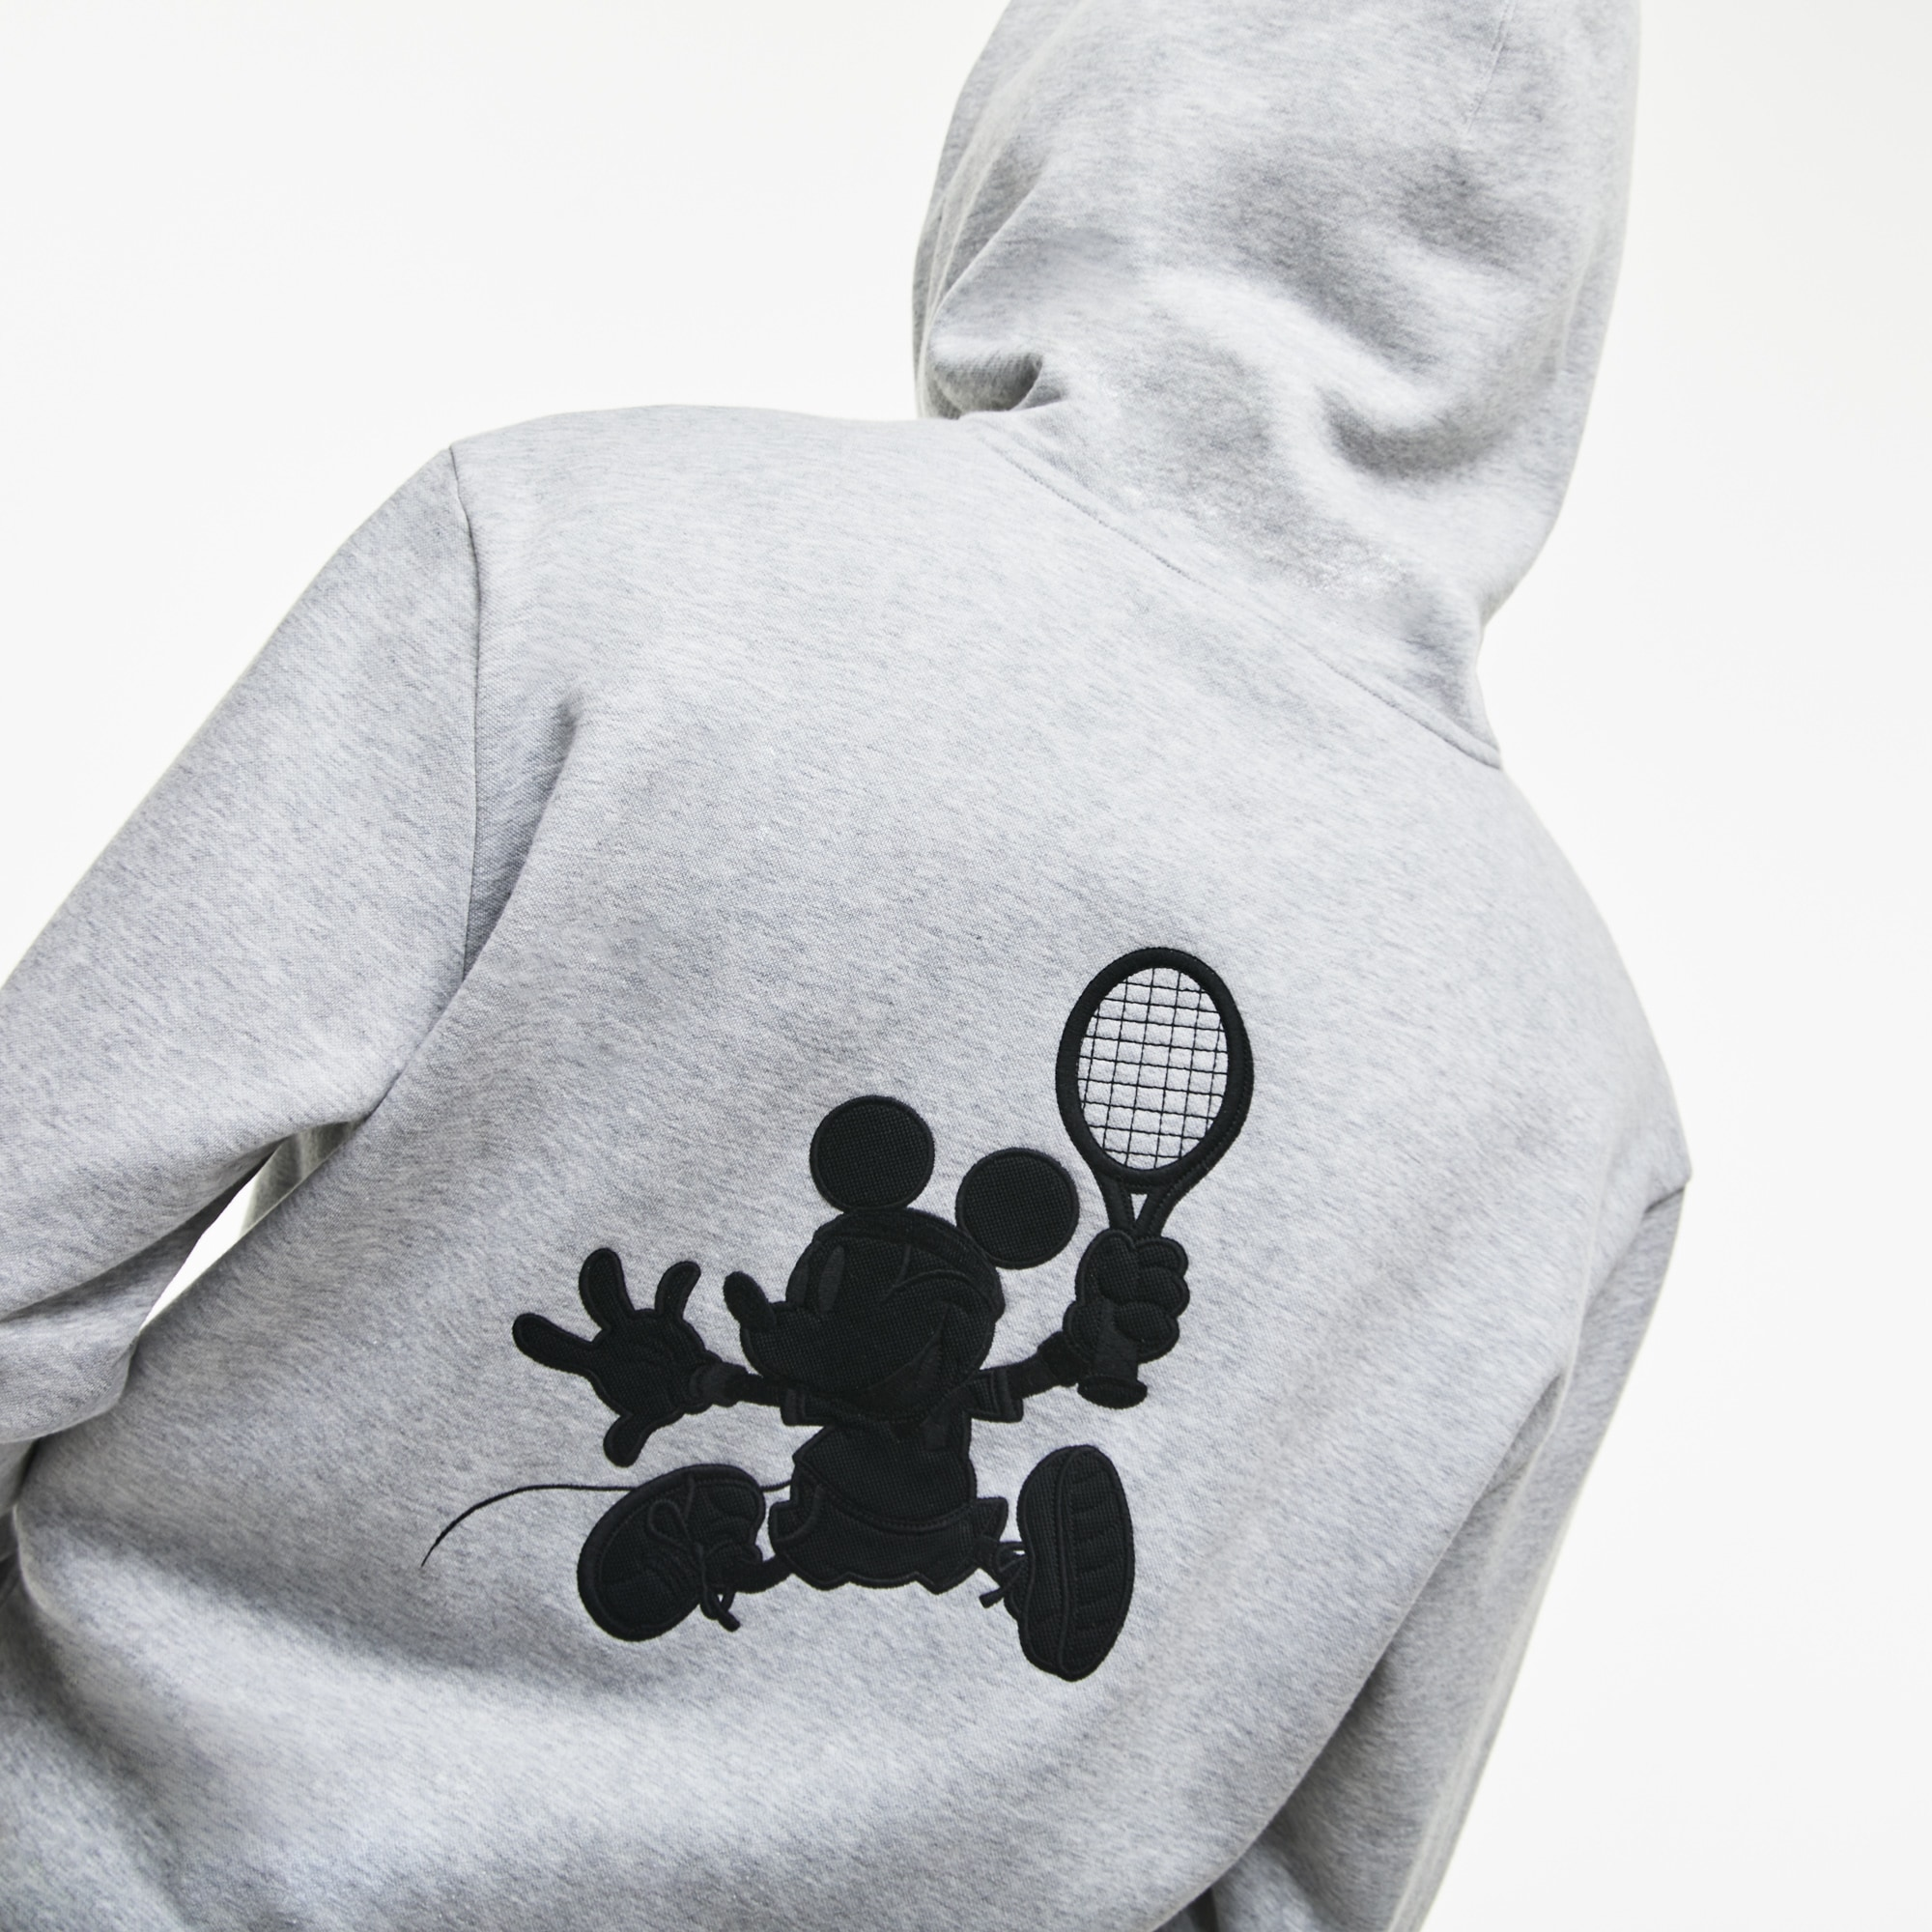 Unisex Disney Mickey Embroidery Hooded Fleece Sweatshirt